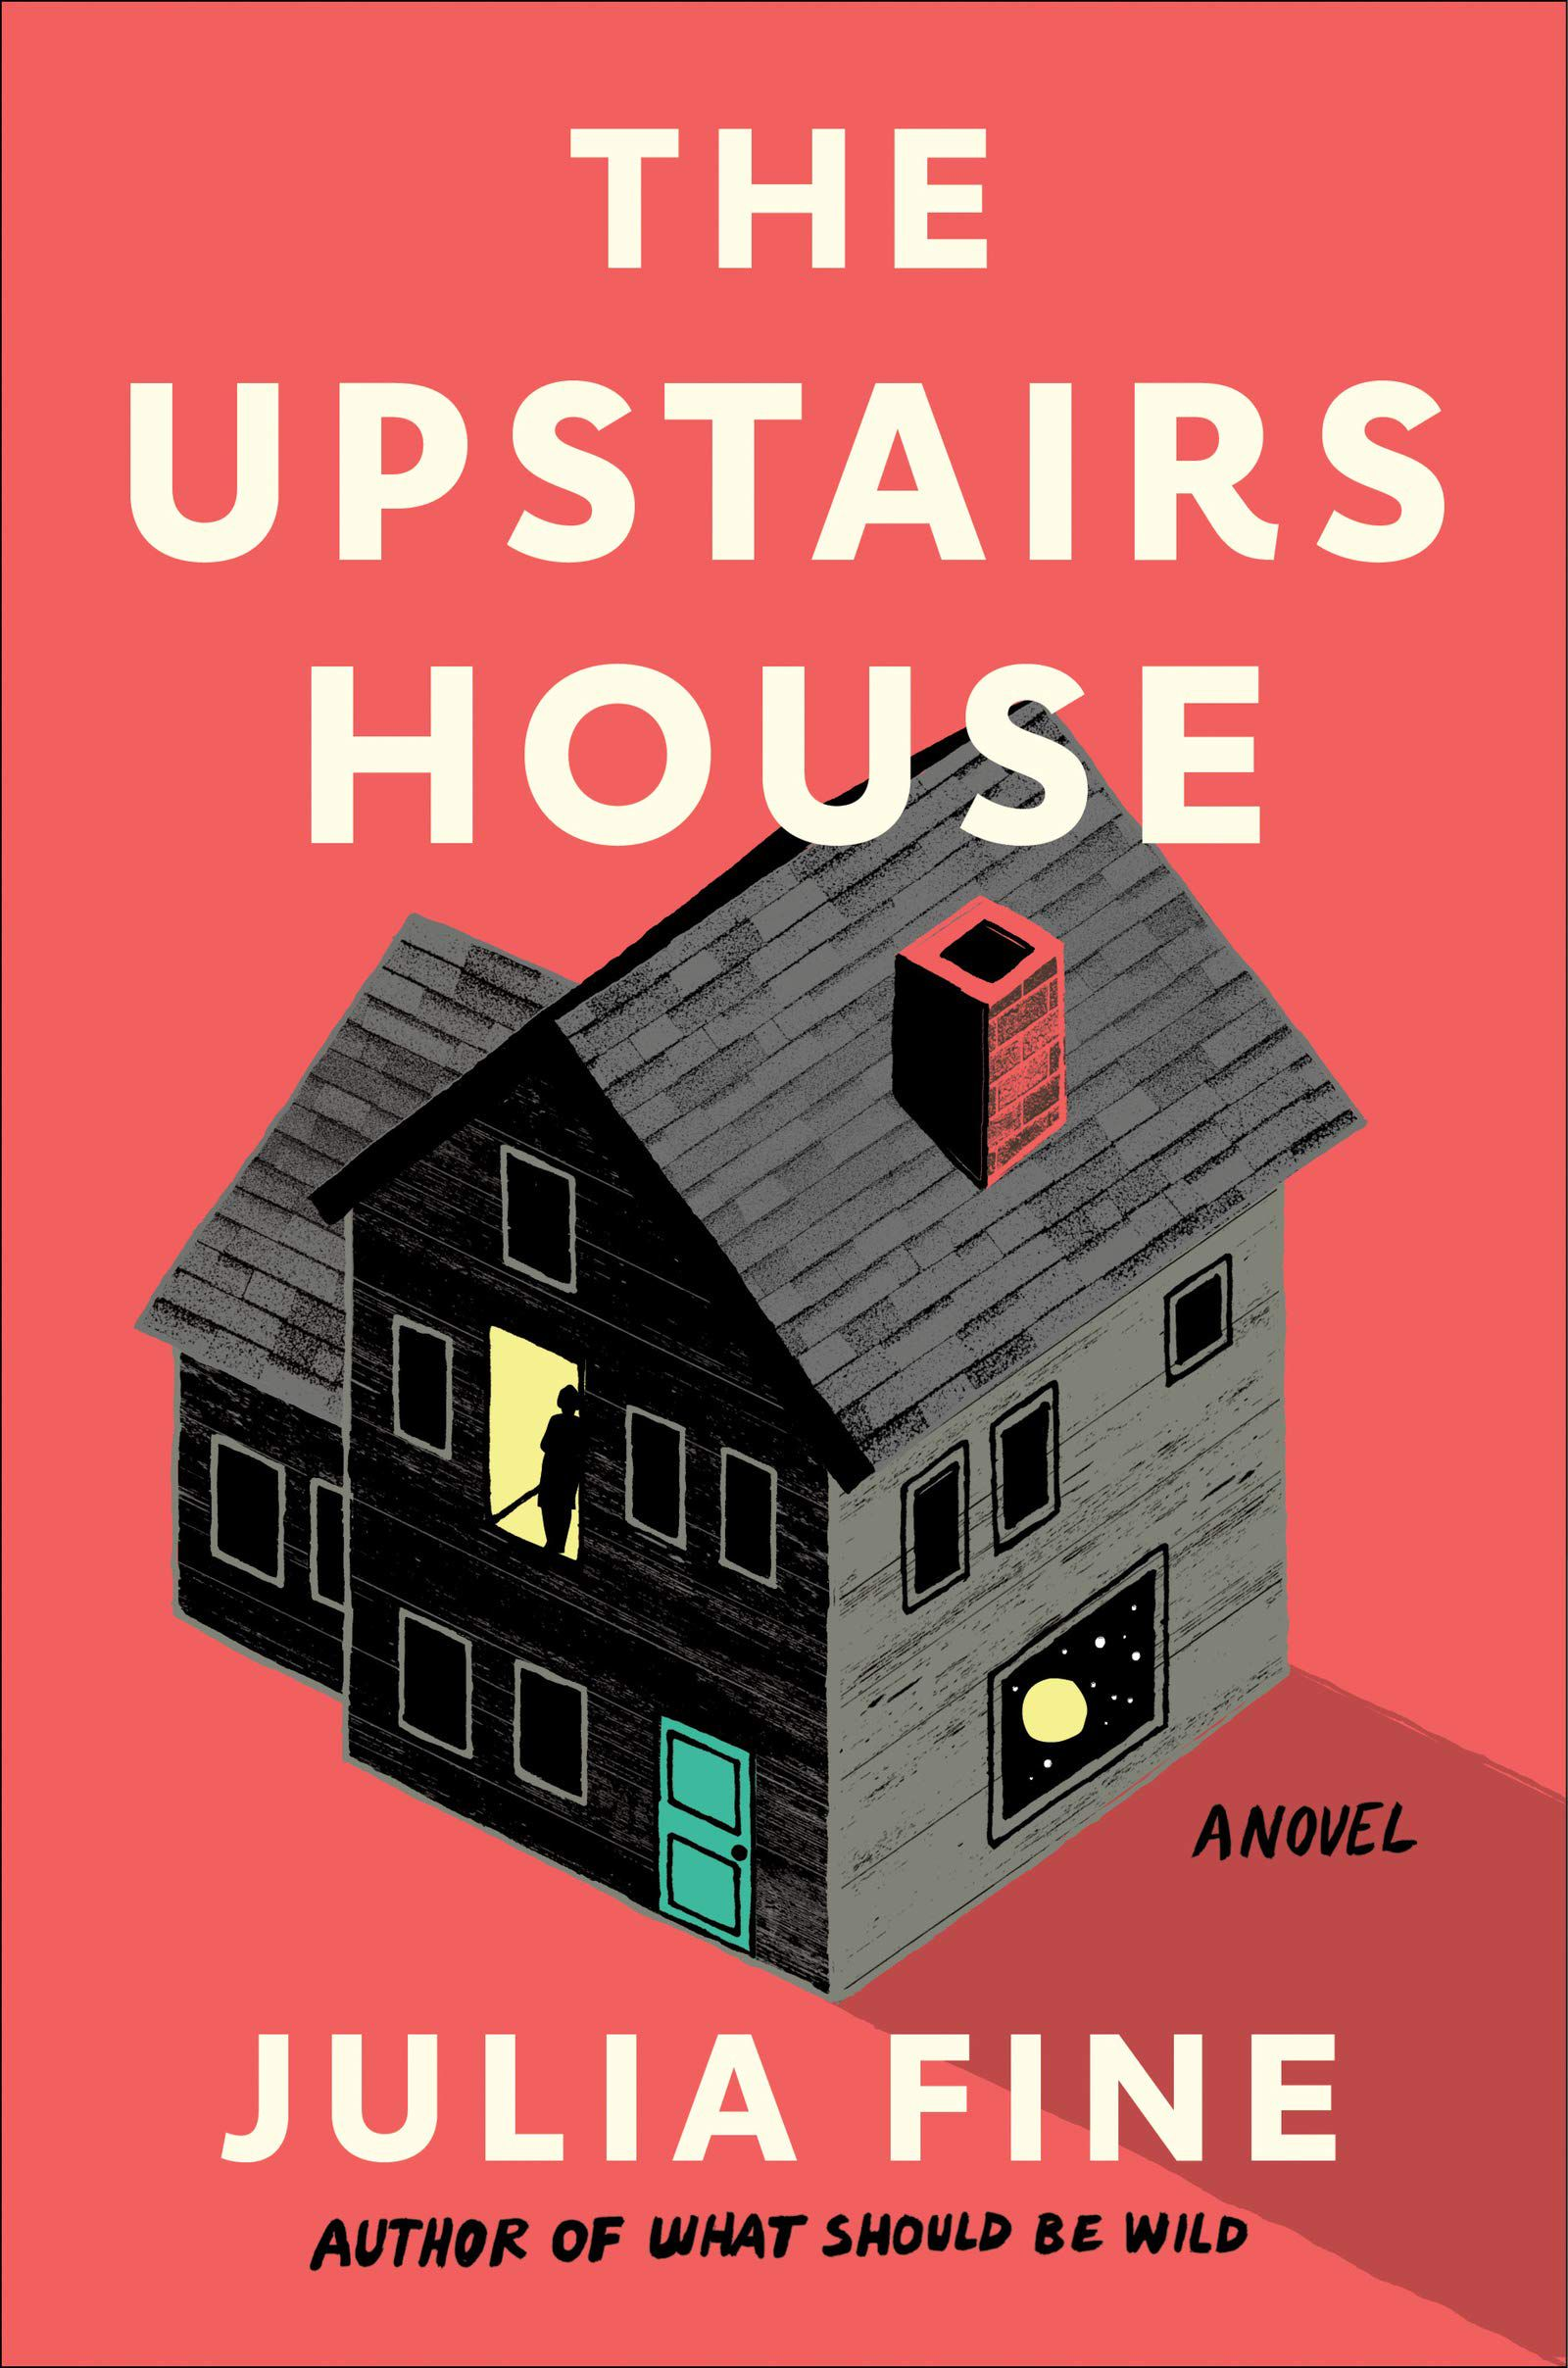 Book cover of The Upstairs House